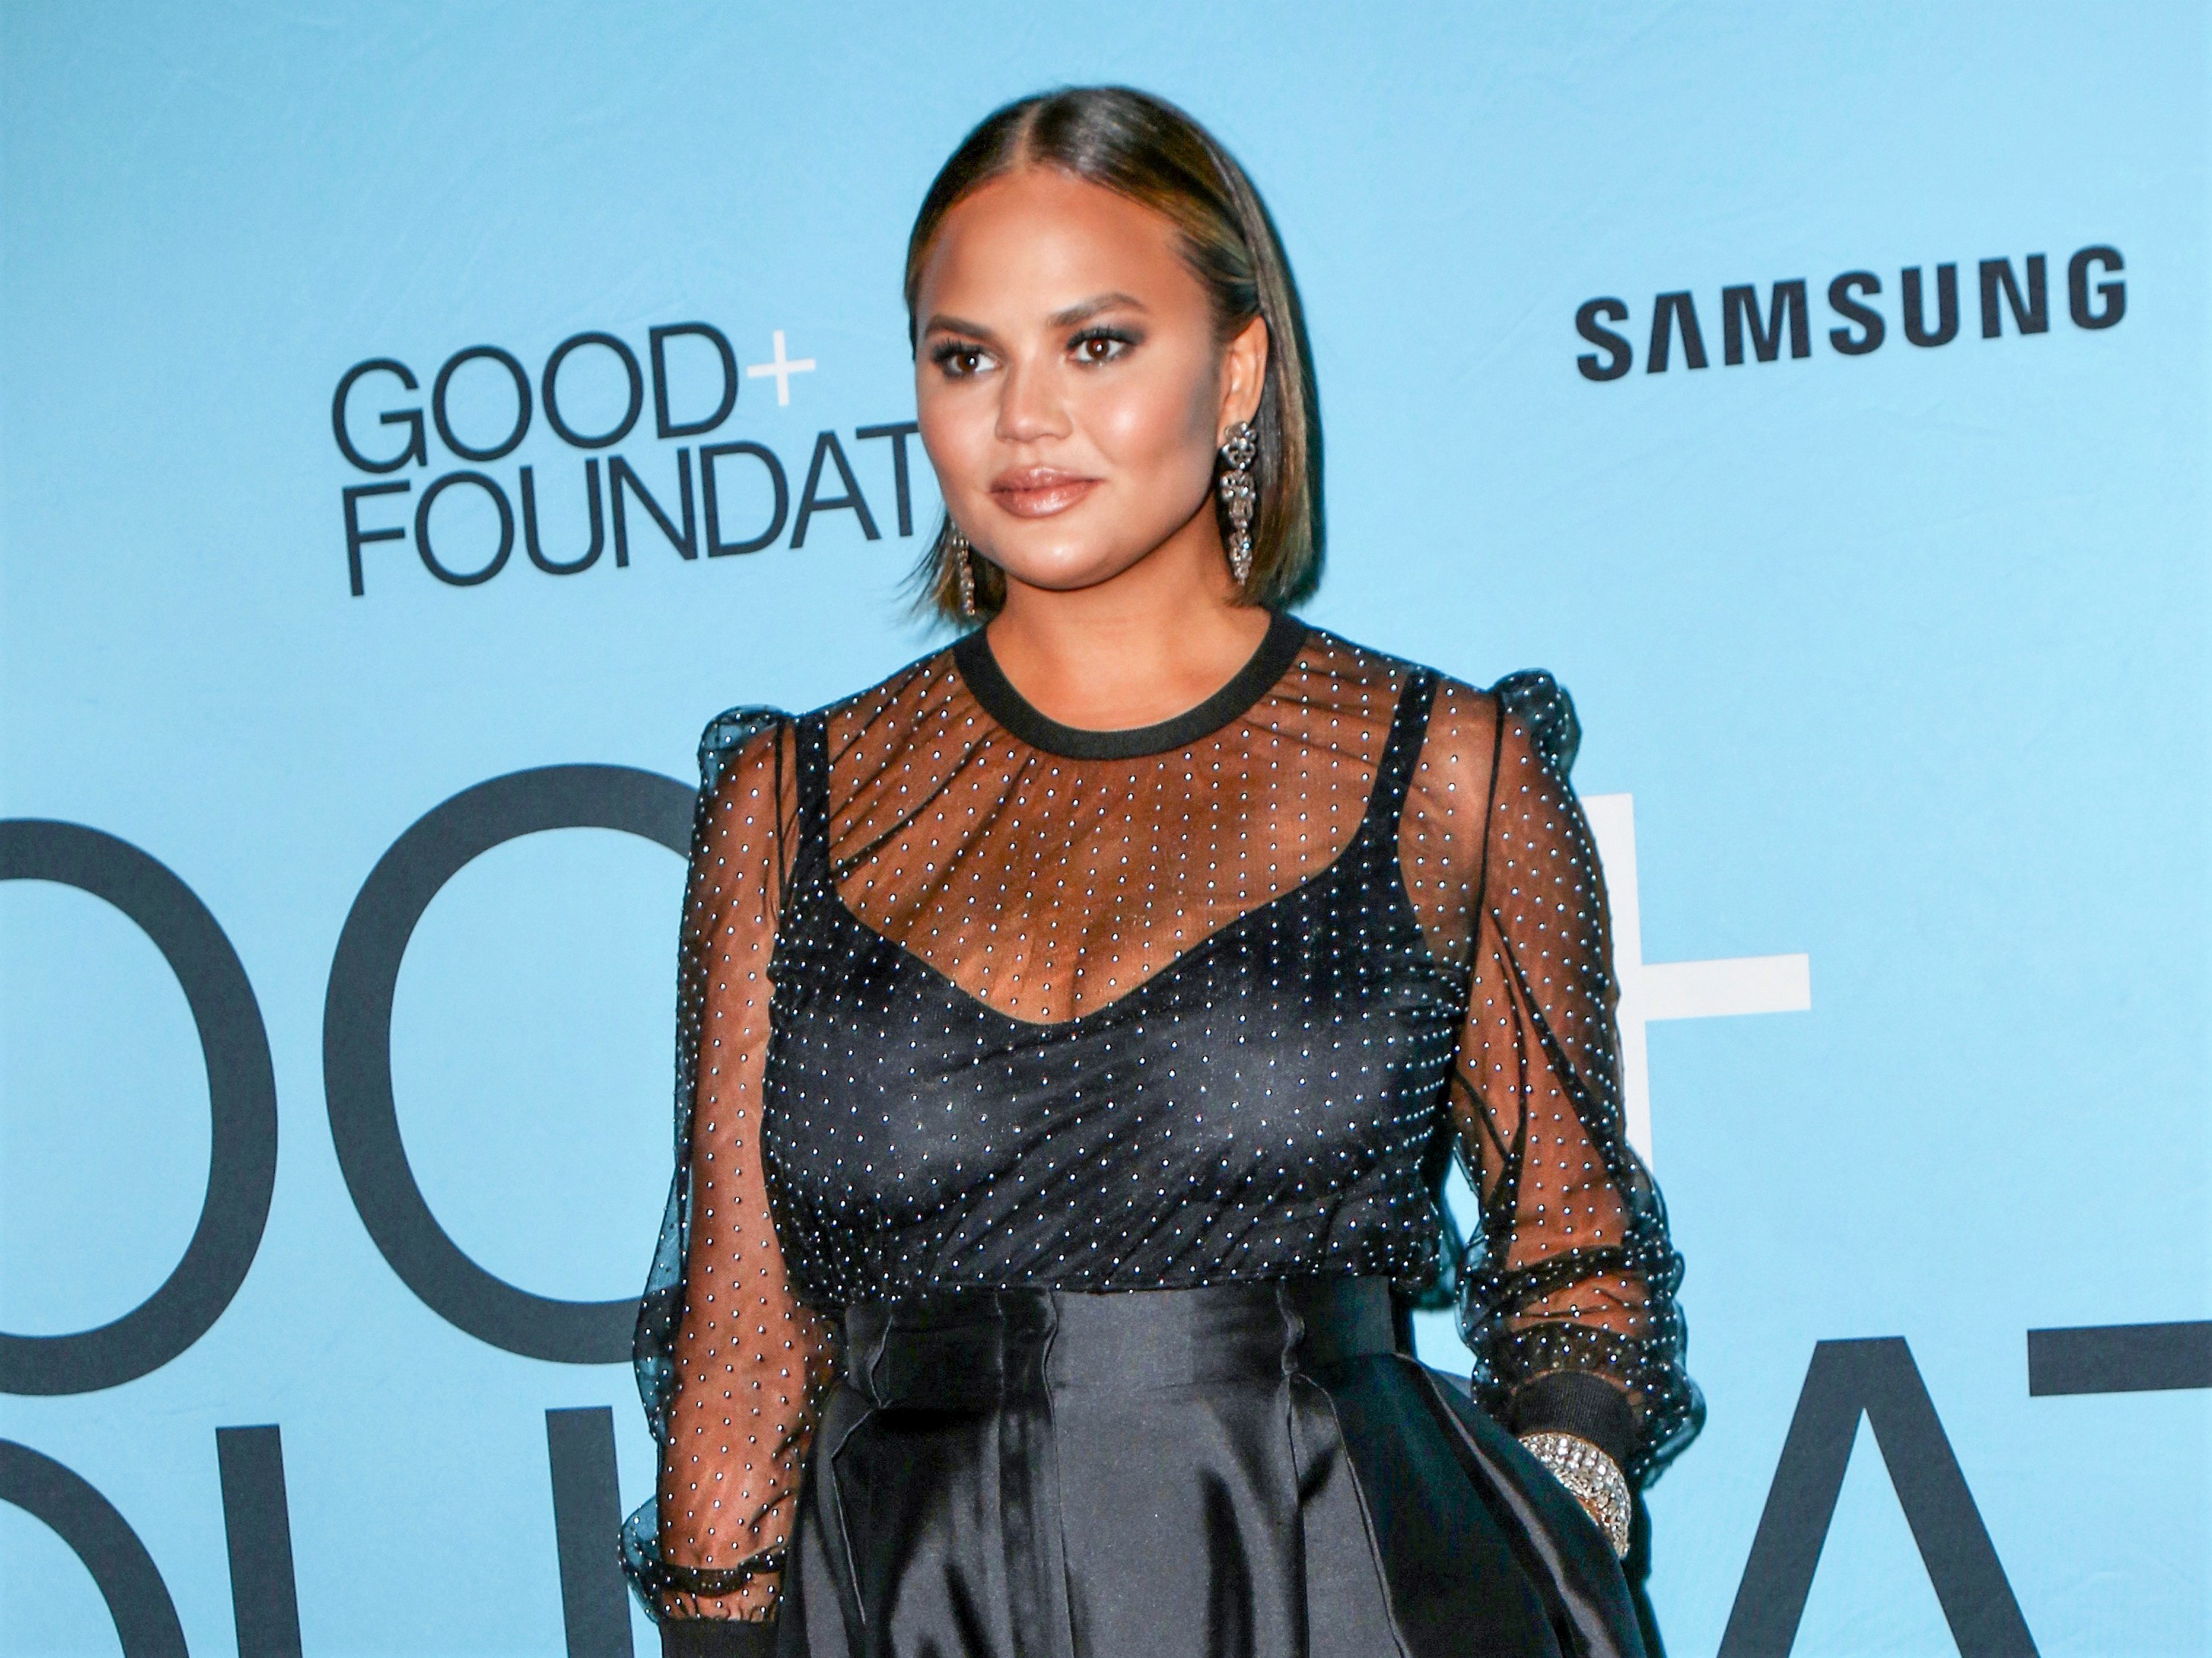 Chrissy Teigen Short Hair Good Foundation Benefit Carpet